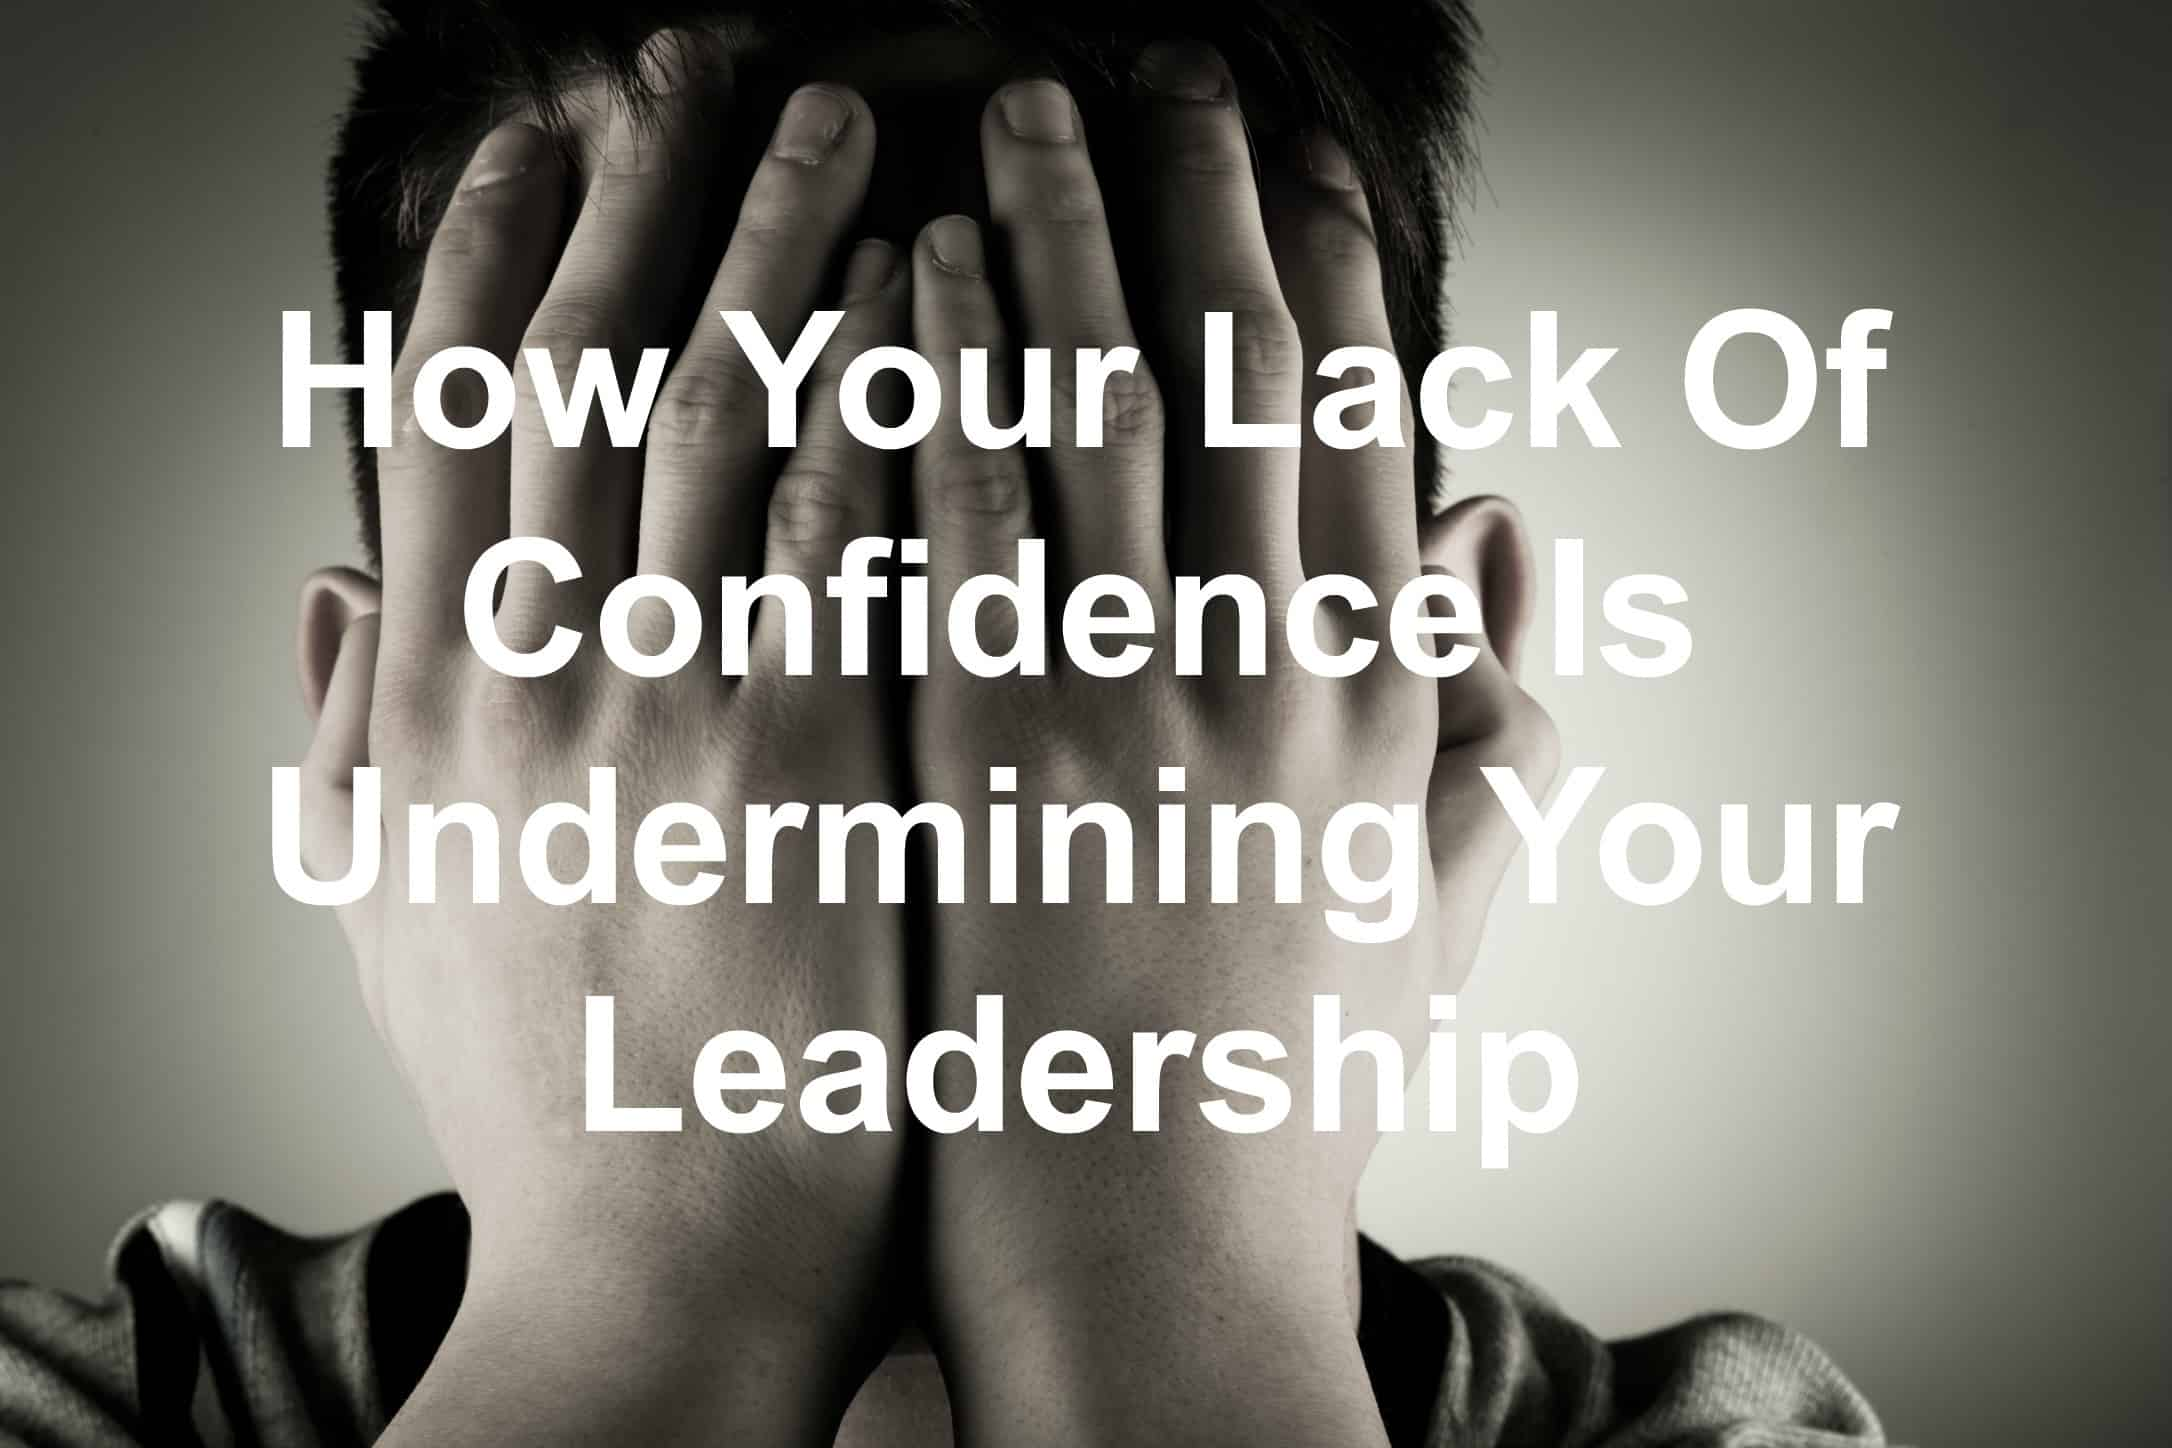 You need confidence to lead well